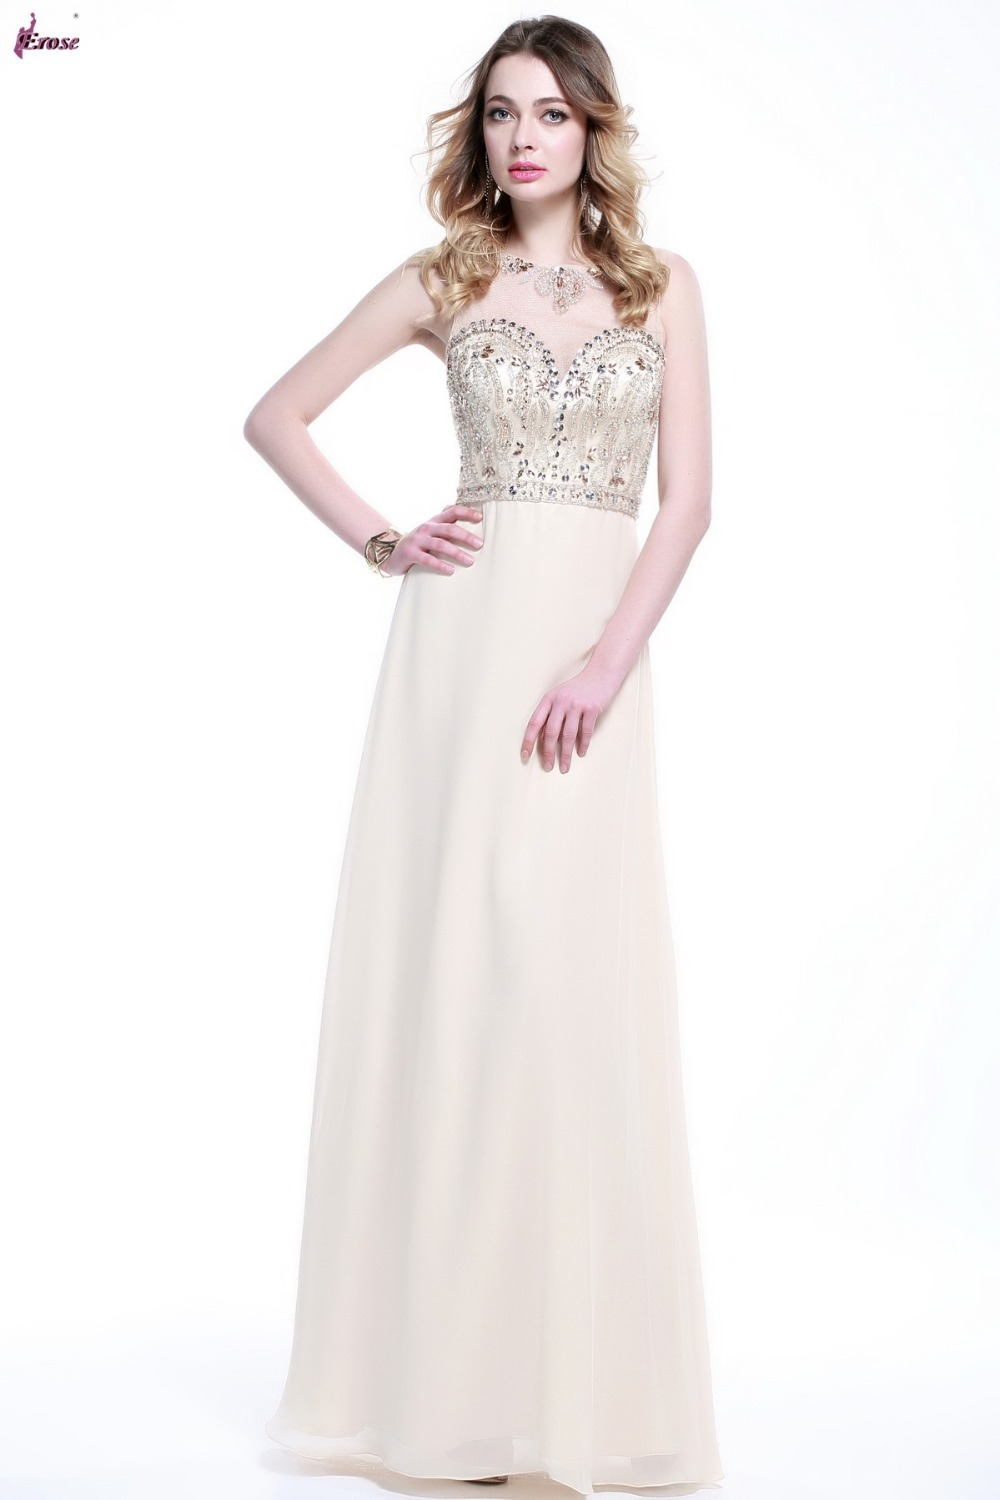 A Line Fashion Evening Gown Couture Beaded Top Long Chiffon Vestido Pra Festa 2015 abendkleid RE-014(China (Mainland))